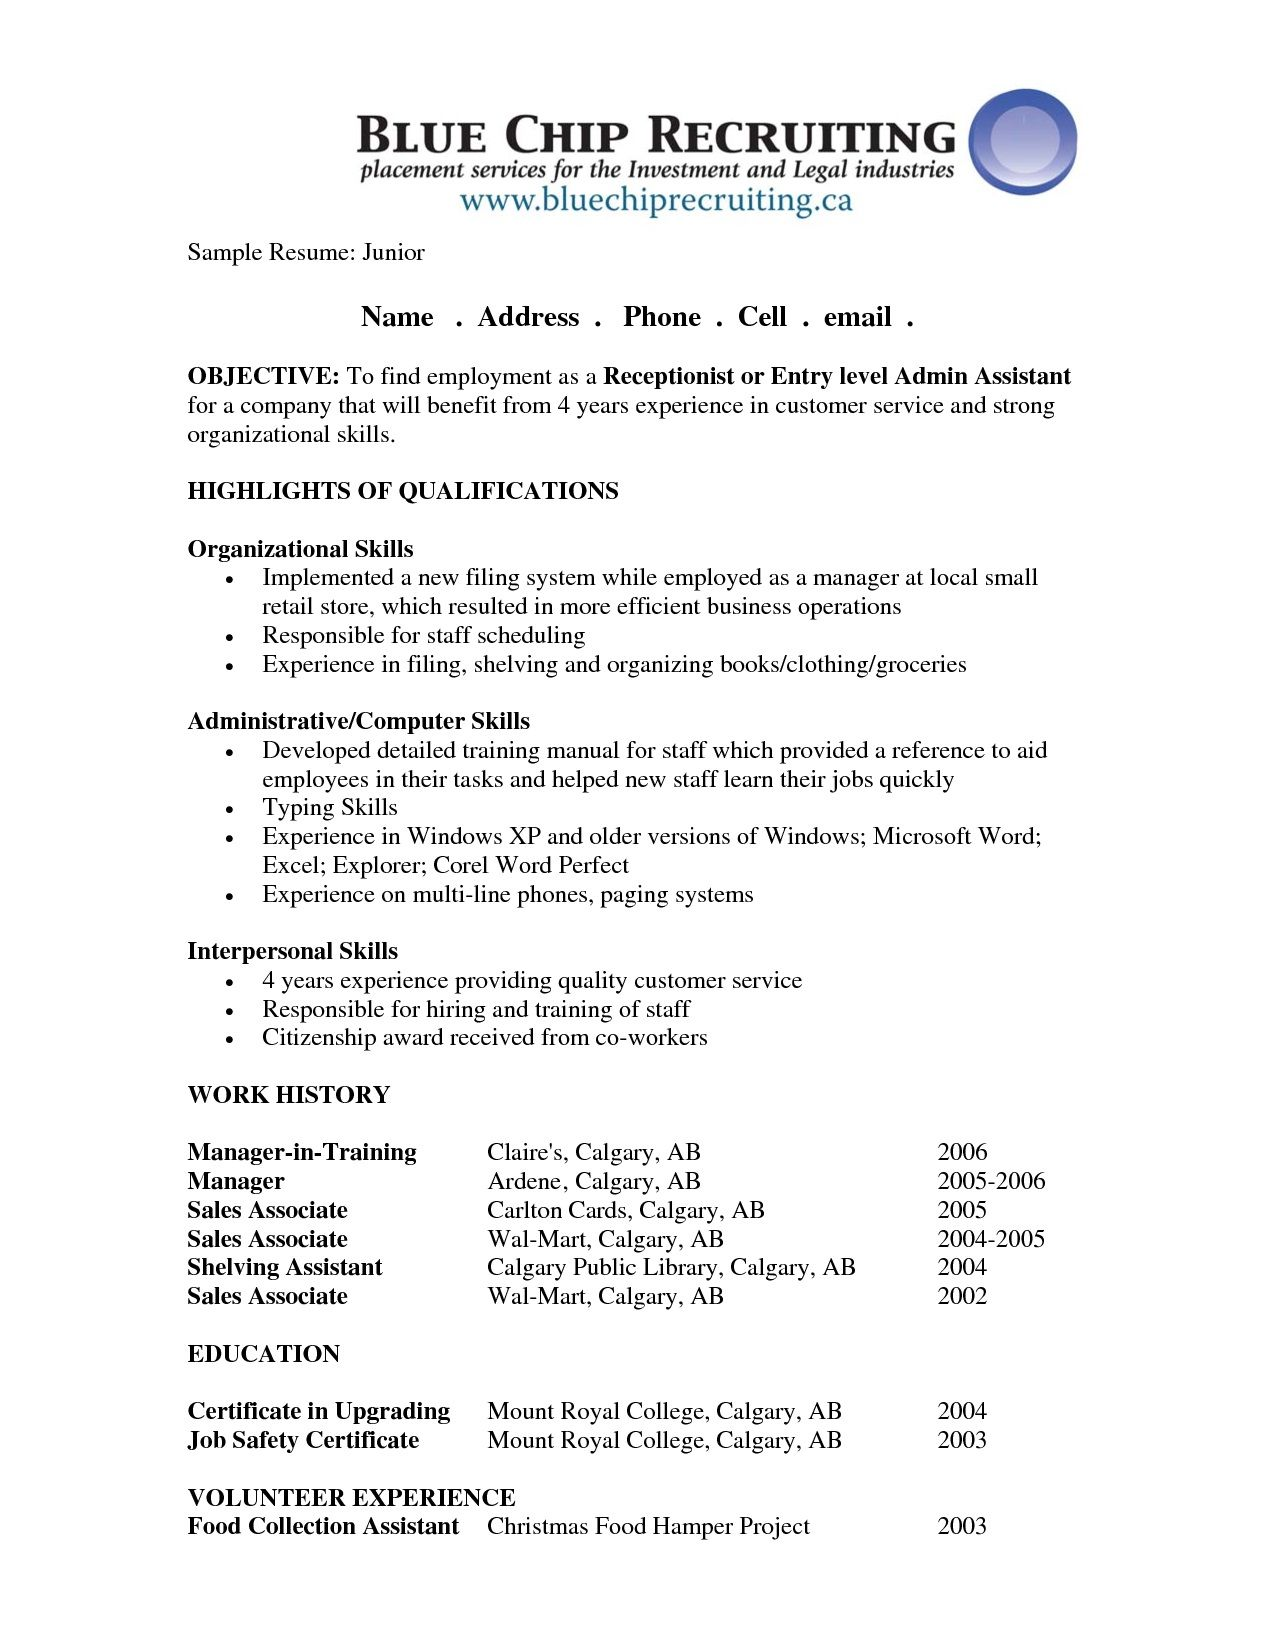 Receptionist Resume Objective Sample    Http://jobresumesample.com/453/receptionist  Resume Objective Sample